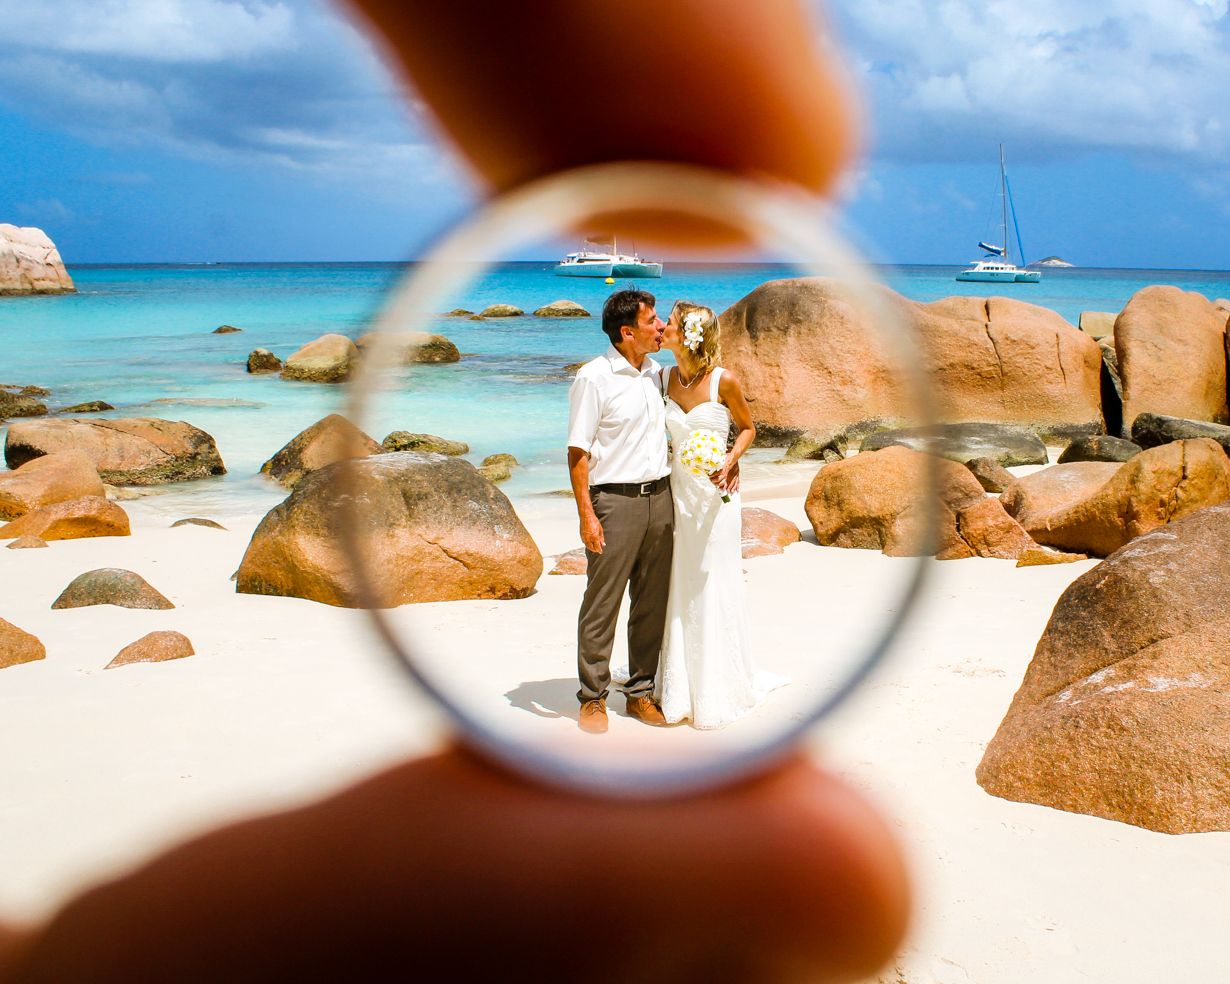 Marriage Couple At The Beach Get Framed By Their Wedding Ring In 2020 Marriage Couple Seychelles Wedding Couple Beach